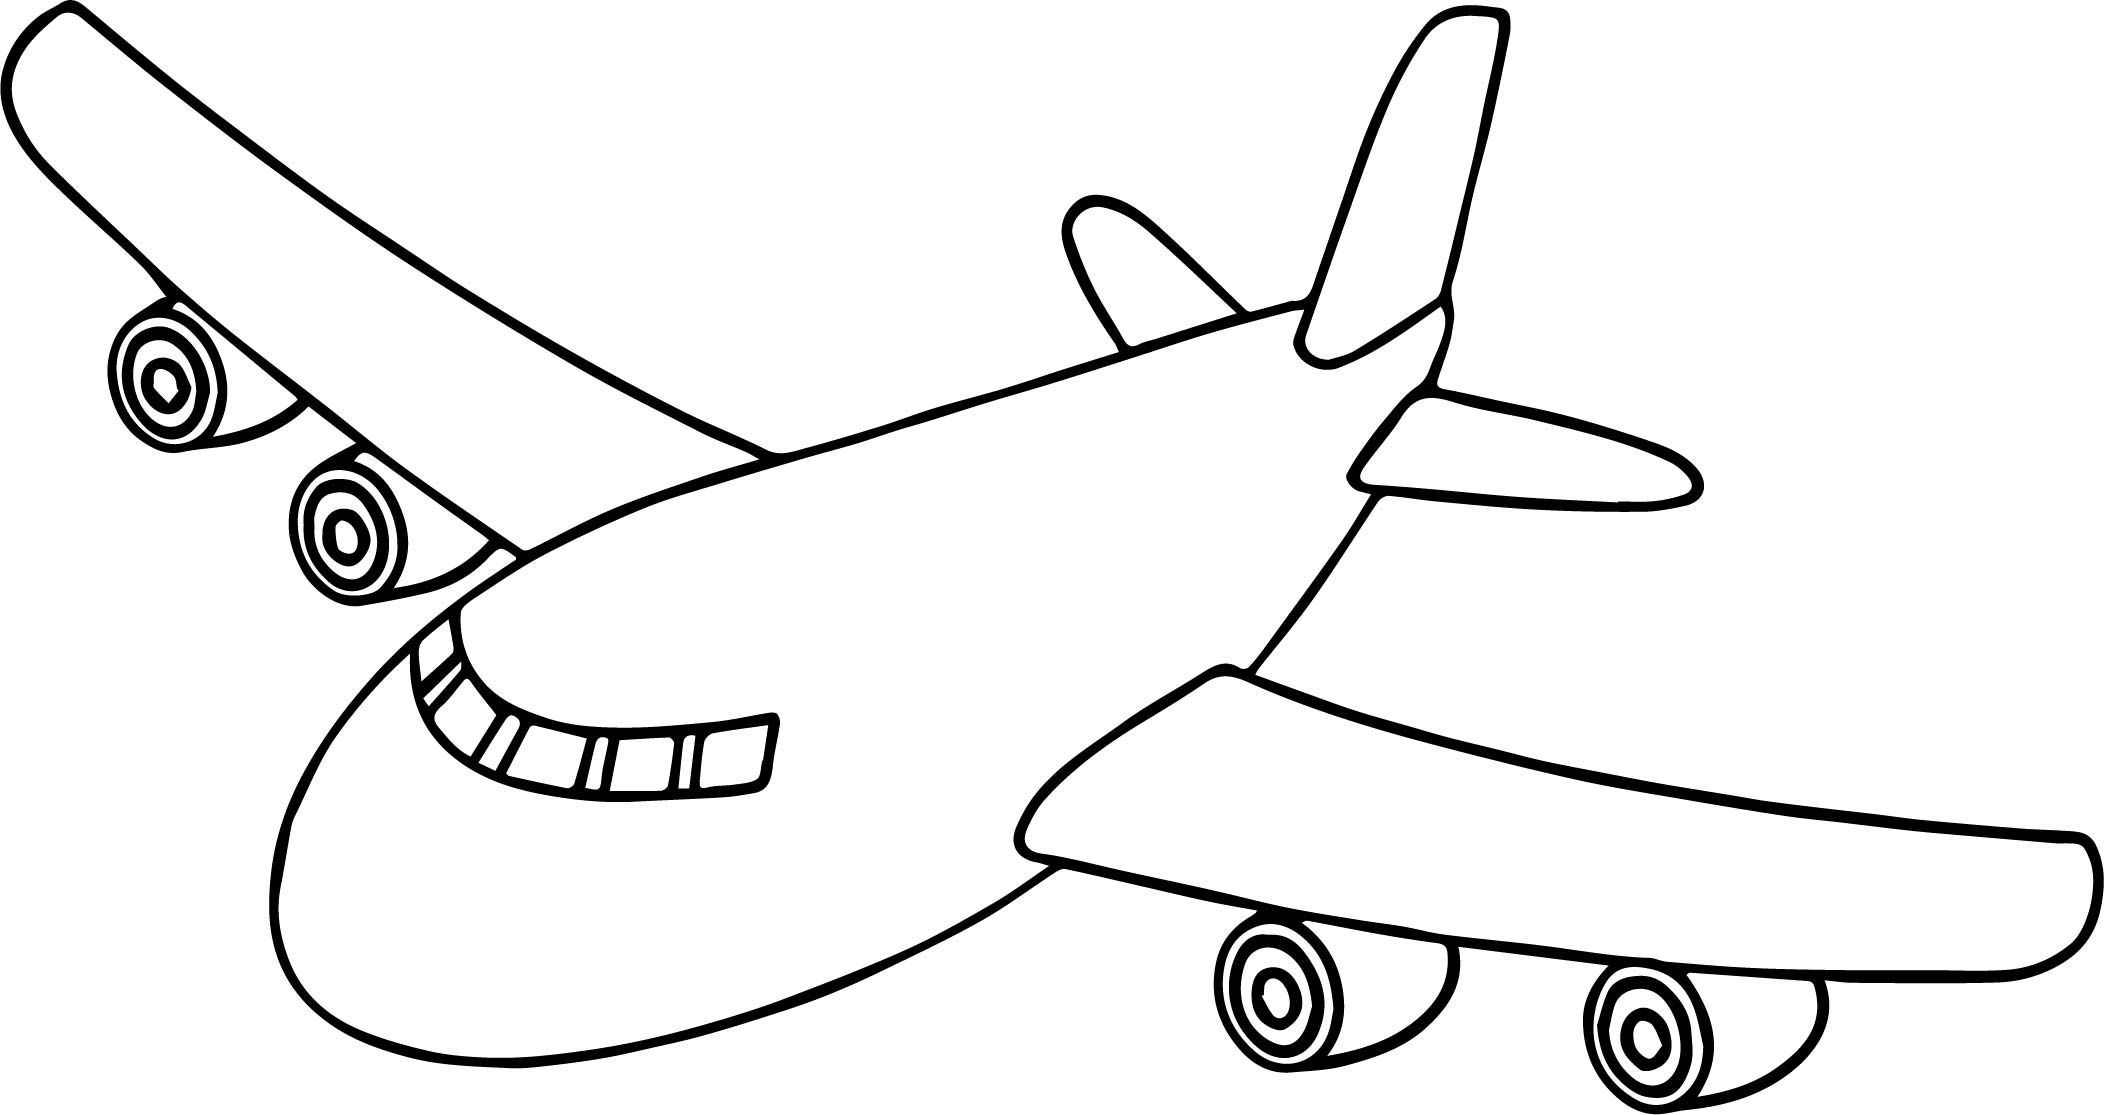 coloring page airplane airplane coloring pages coloring pages to download and print airplane coloring page